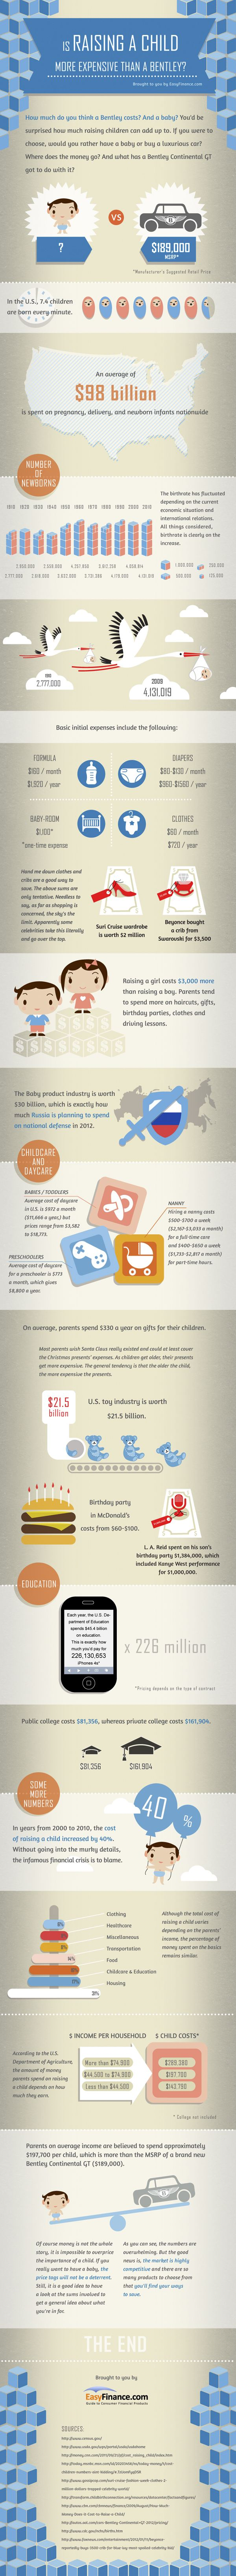 Average Cost of Raising a Child